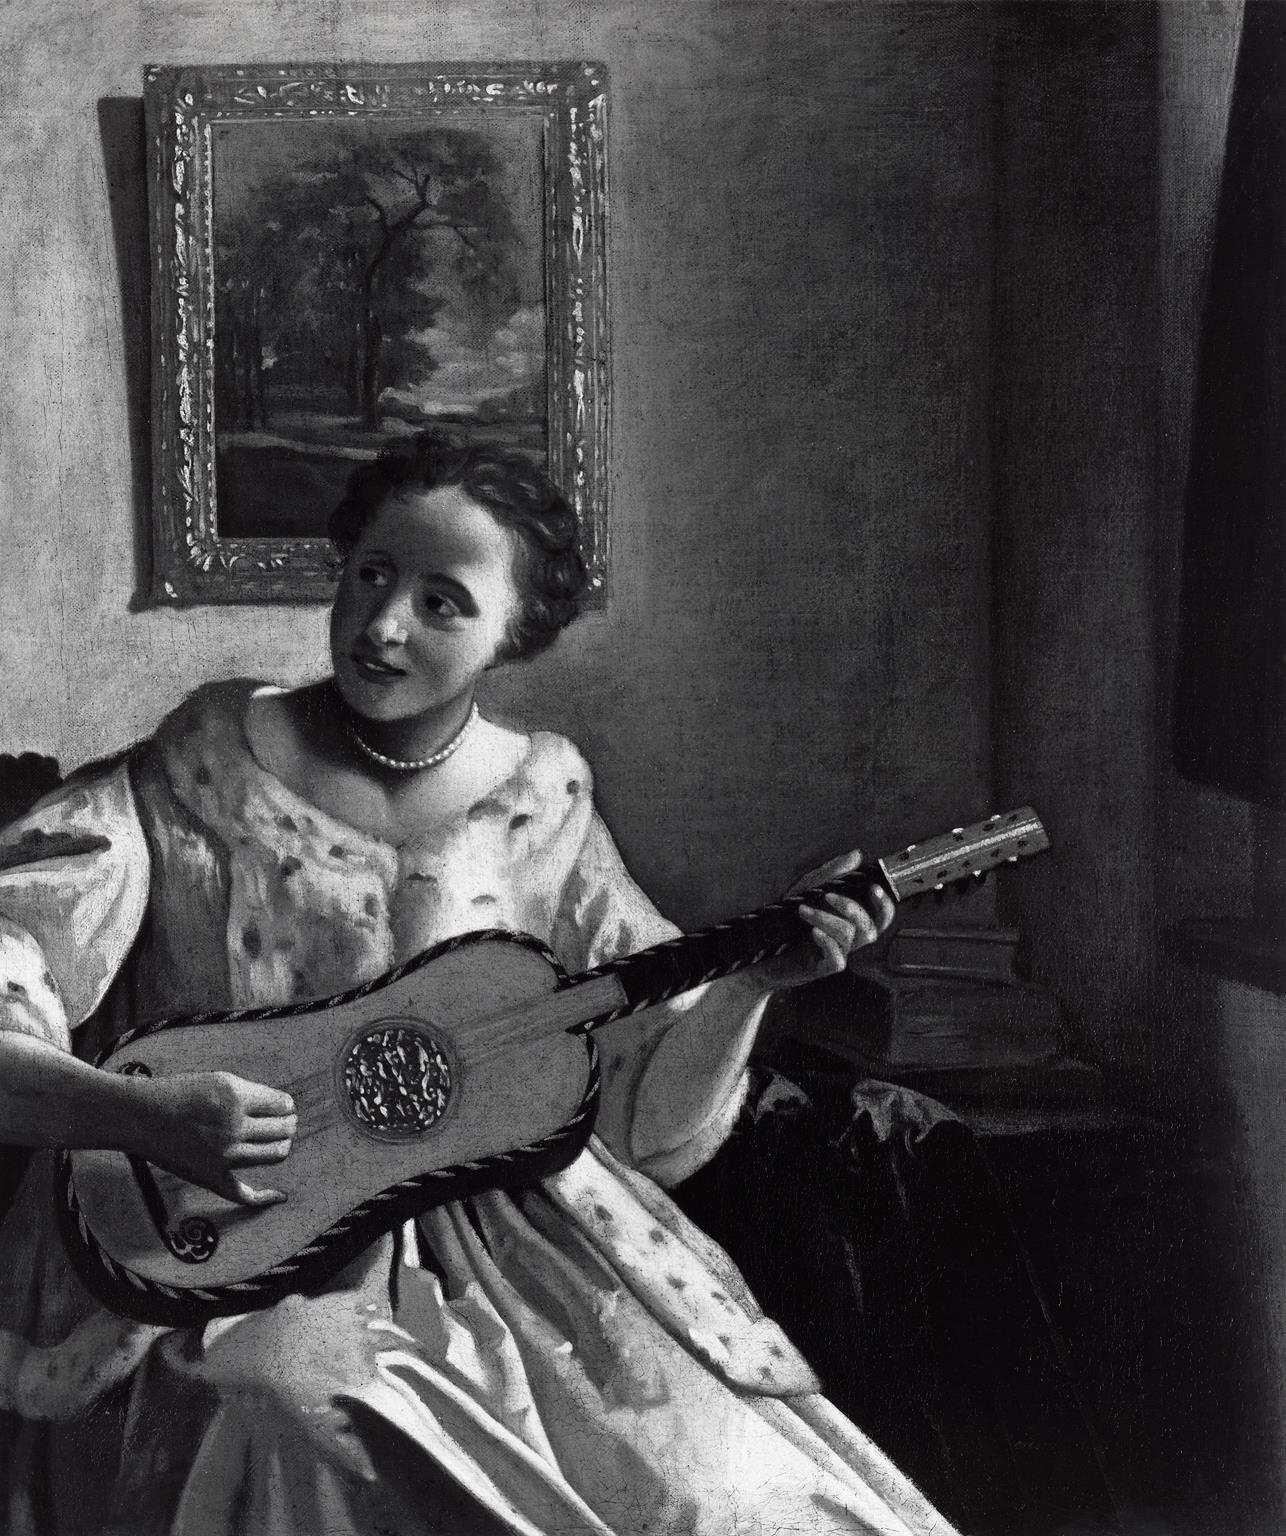 Fig. 7: Copy after Johannes Vermeer, Lady with a Guitar , late 17th century, John G. Johnson Collection, 1917, Philadelphia Museum of Art